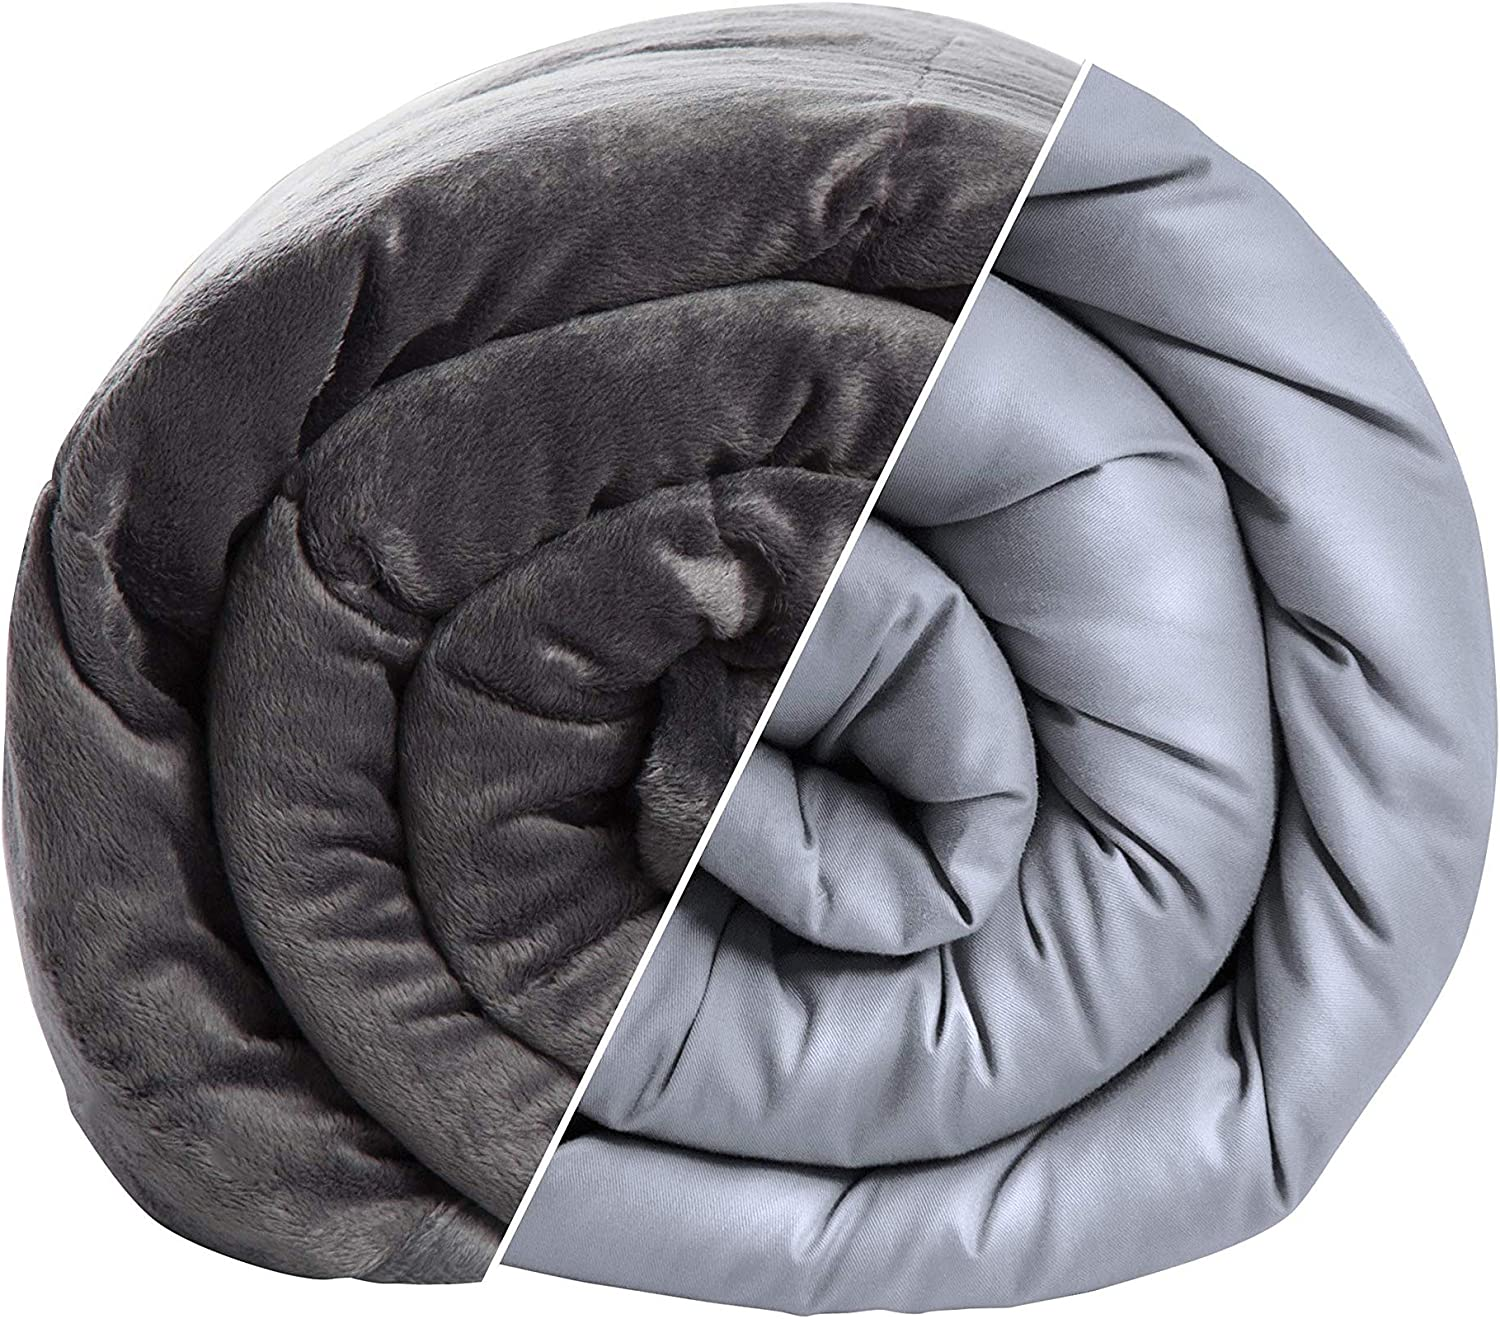 calming comfort reversible cooling weighted blanket by sharper image dual sided viscose bamboo soft velveteen for hot cold sleepers heavy